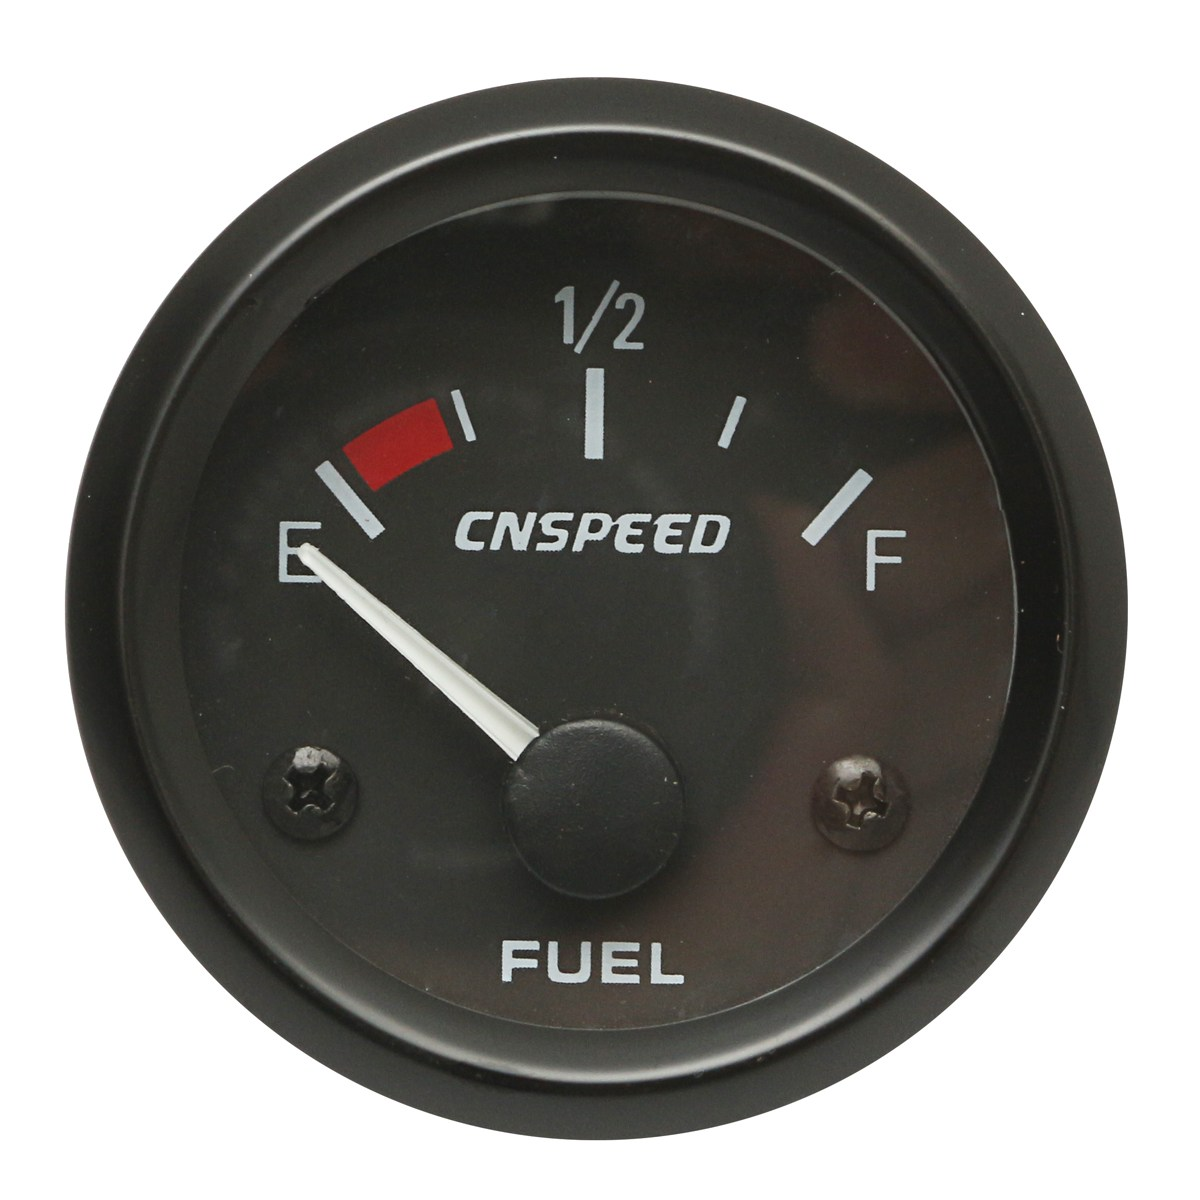 Automobiles & Motorcycles Self-Conscious 2 52mm Car Fuel Gauge Meter Level Gauge W/fuel Sensor E-1/2-f Pointer Led Bringing More Convenience To The People In Their Daily Life